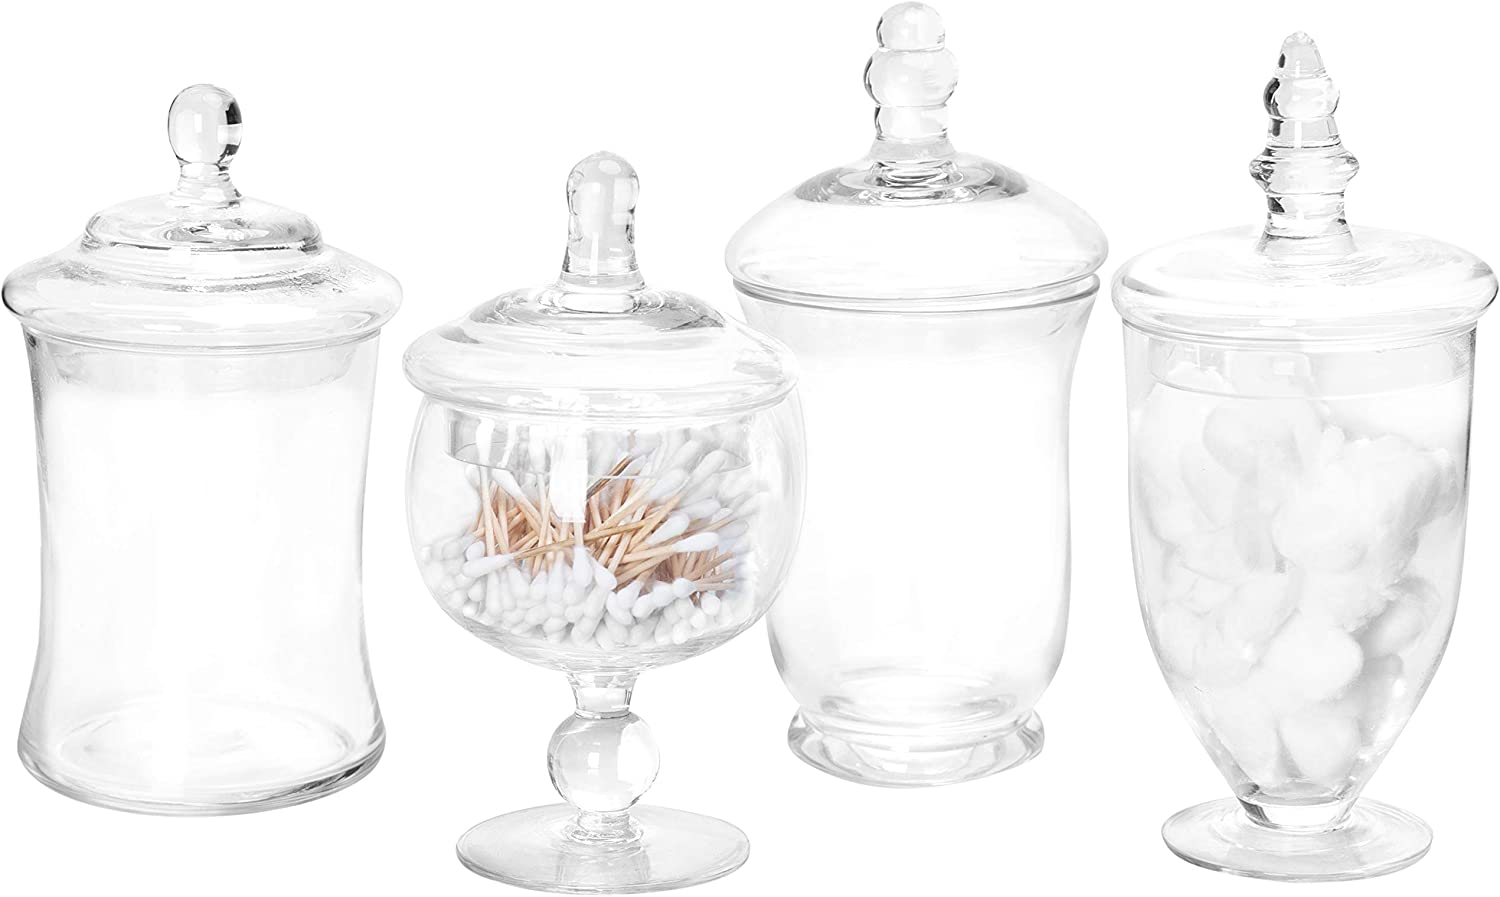 MyGift Set of 4 Small Clear C Limited time for free shipping Candy Apothecary Superior Glass Jars Buffet